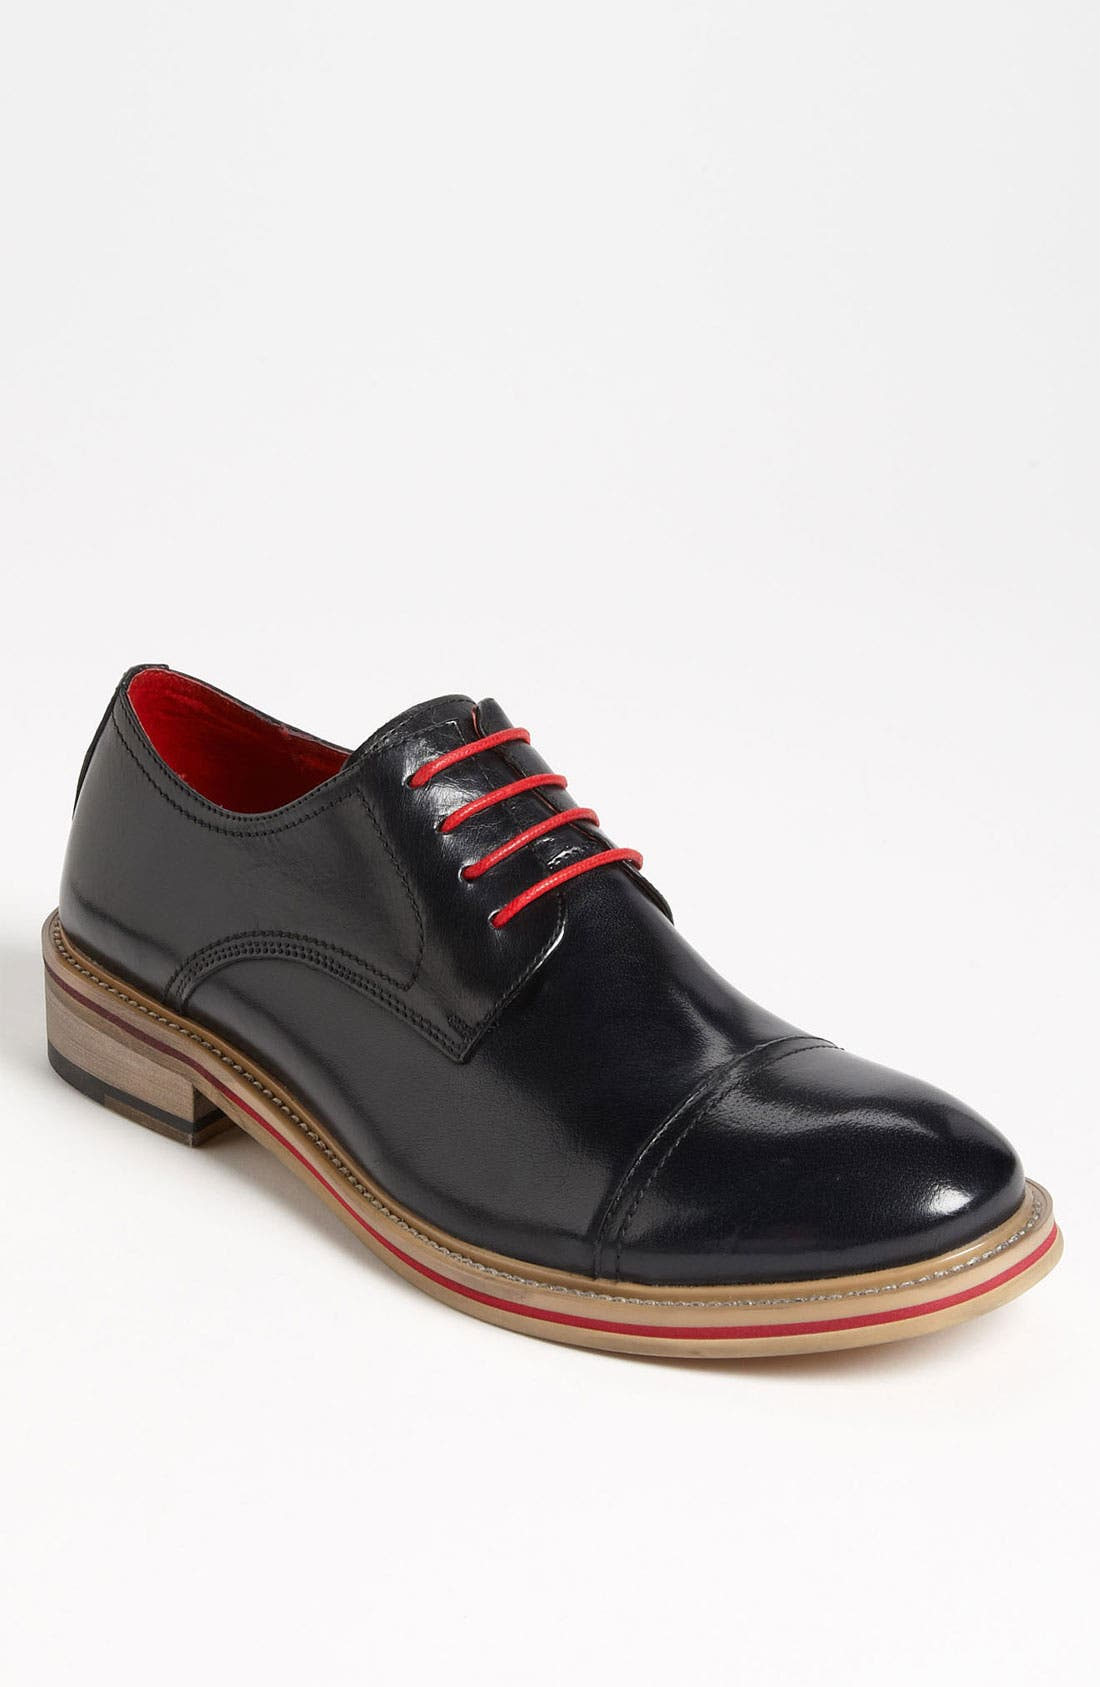 Alternate Image 1 Selected - Steve Madden 'Andiee' Oxford